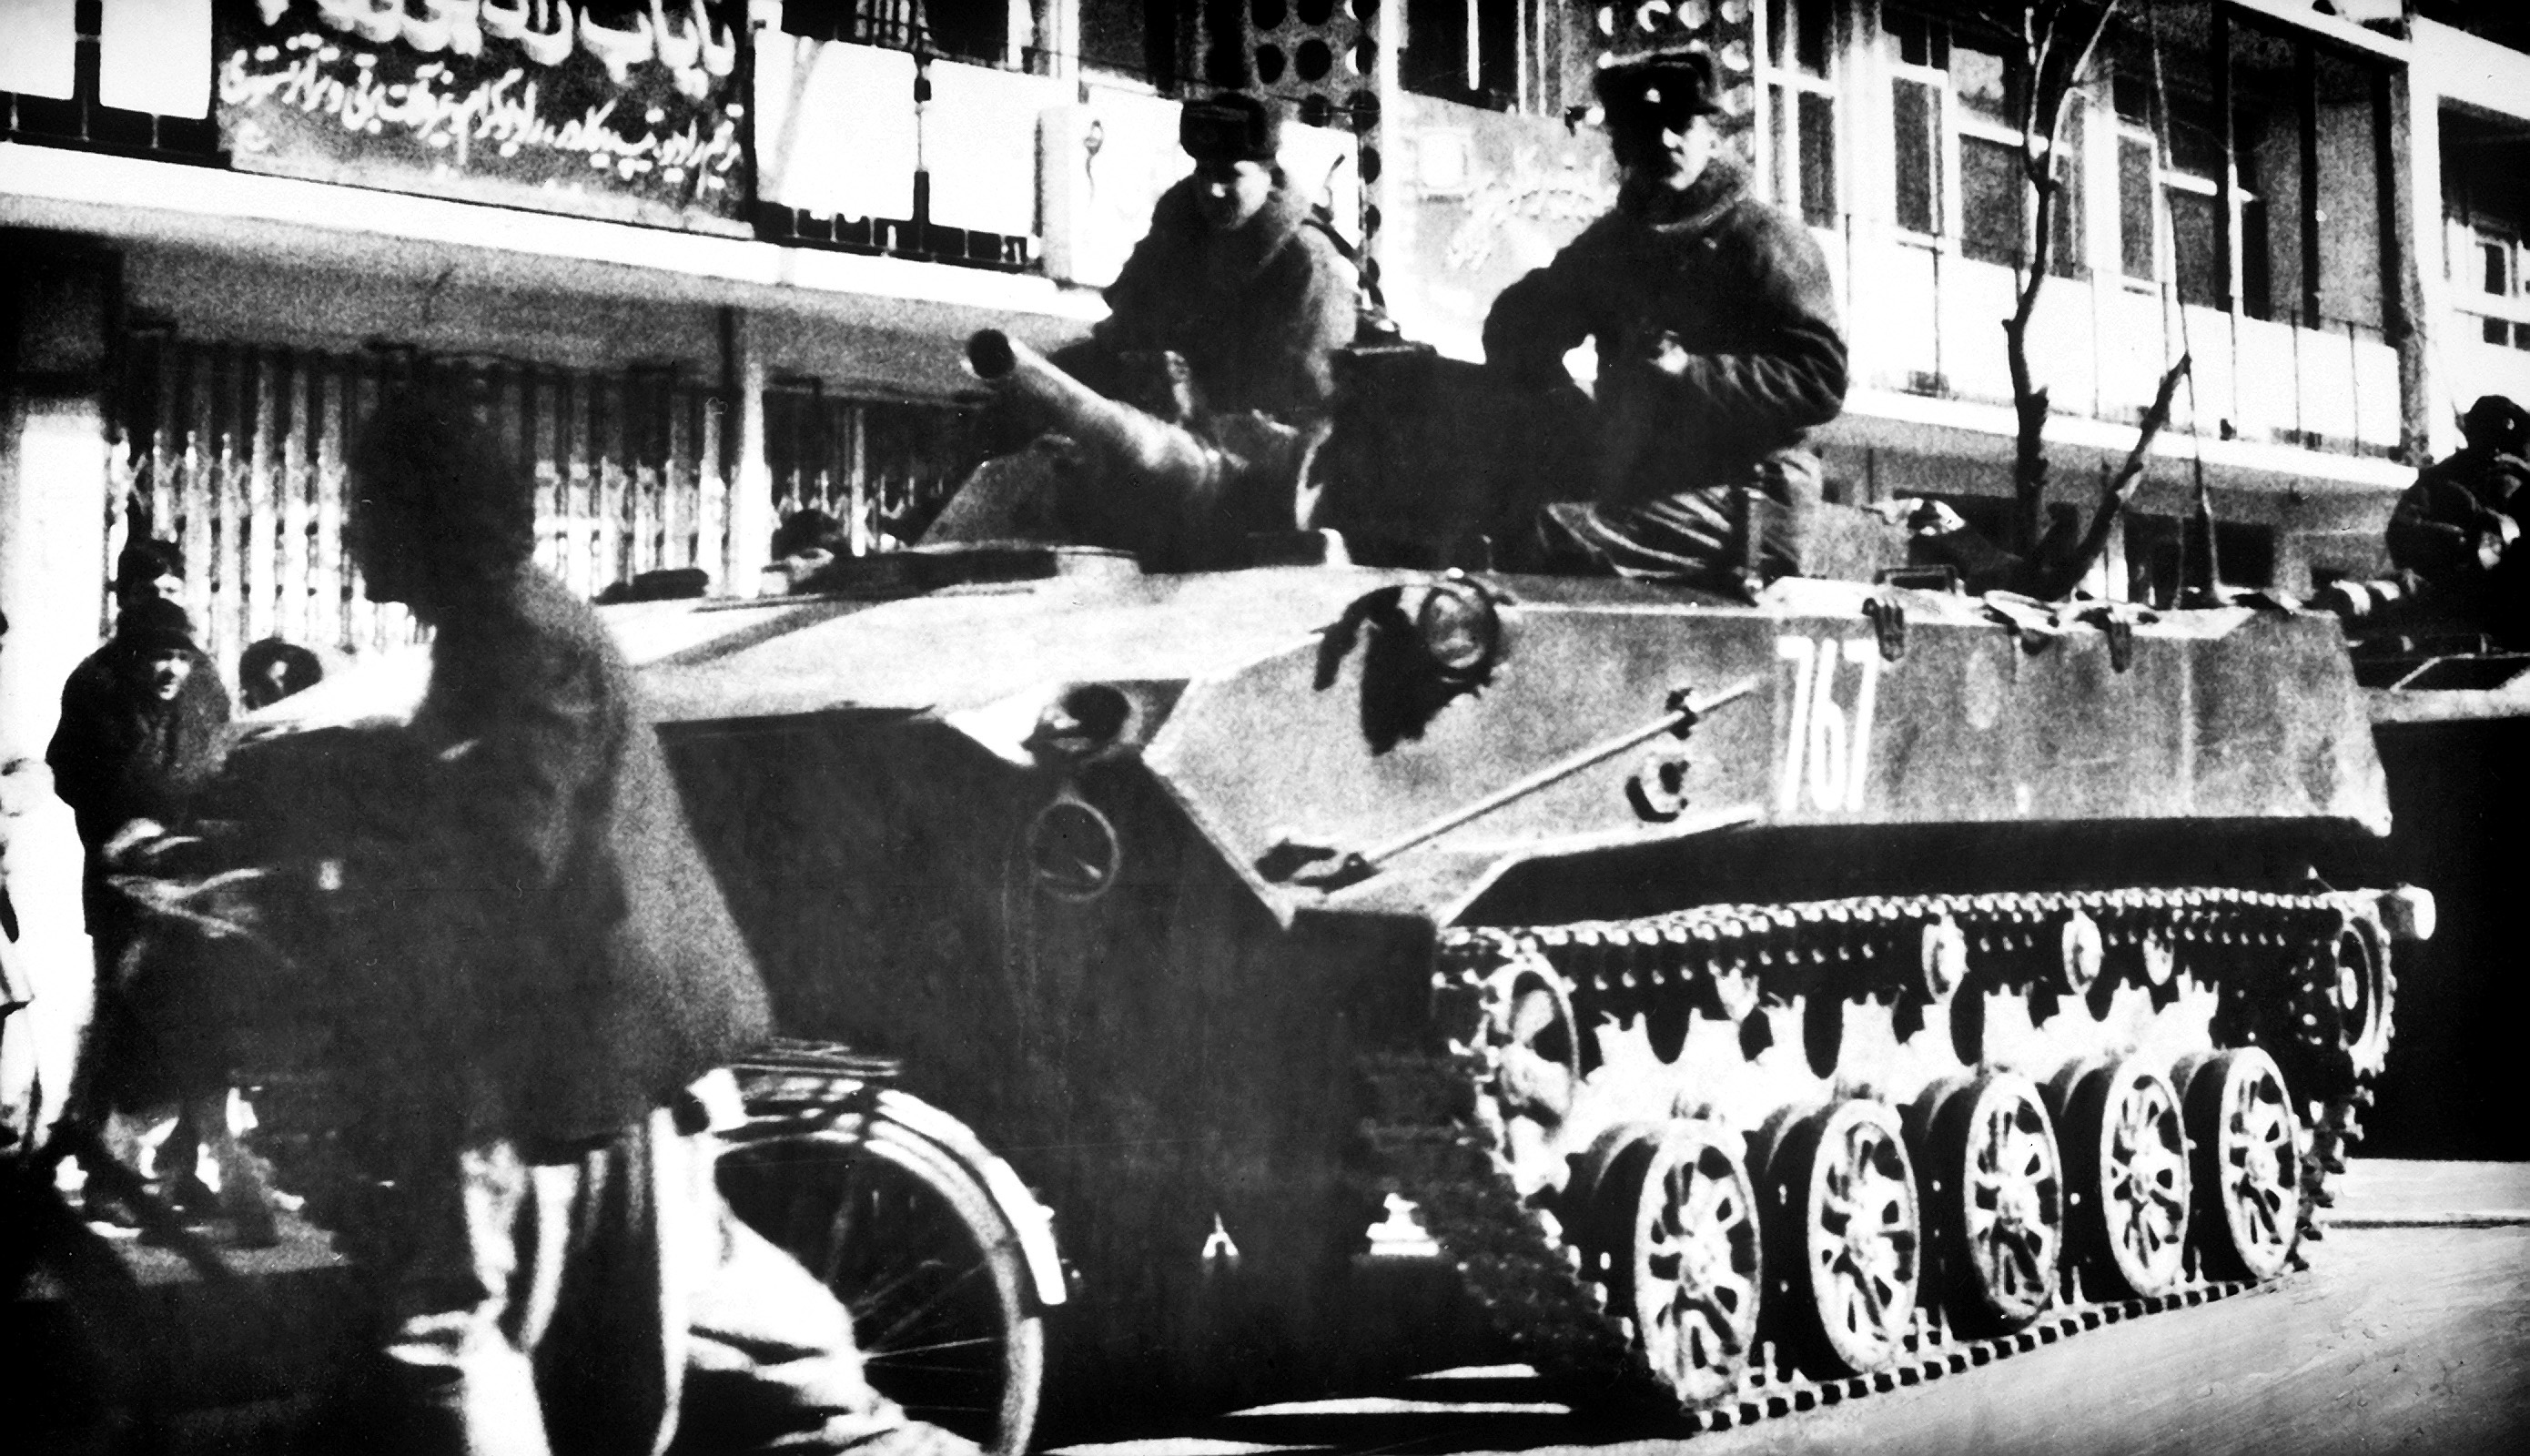 Soldiers ride aboard a Soviet BMD airborne combat vehicle.